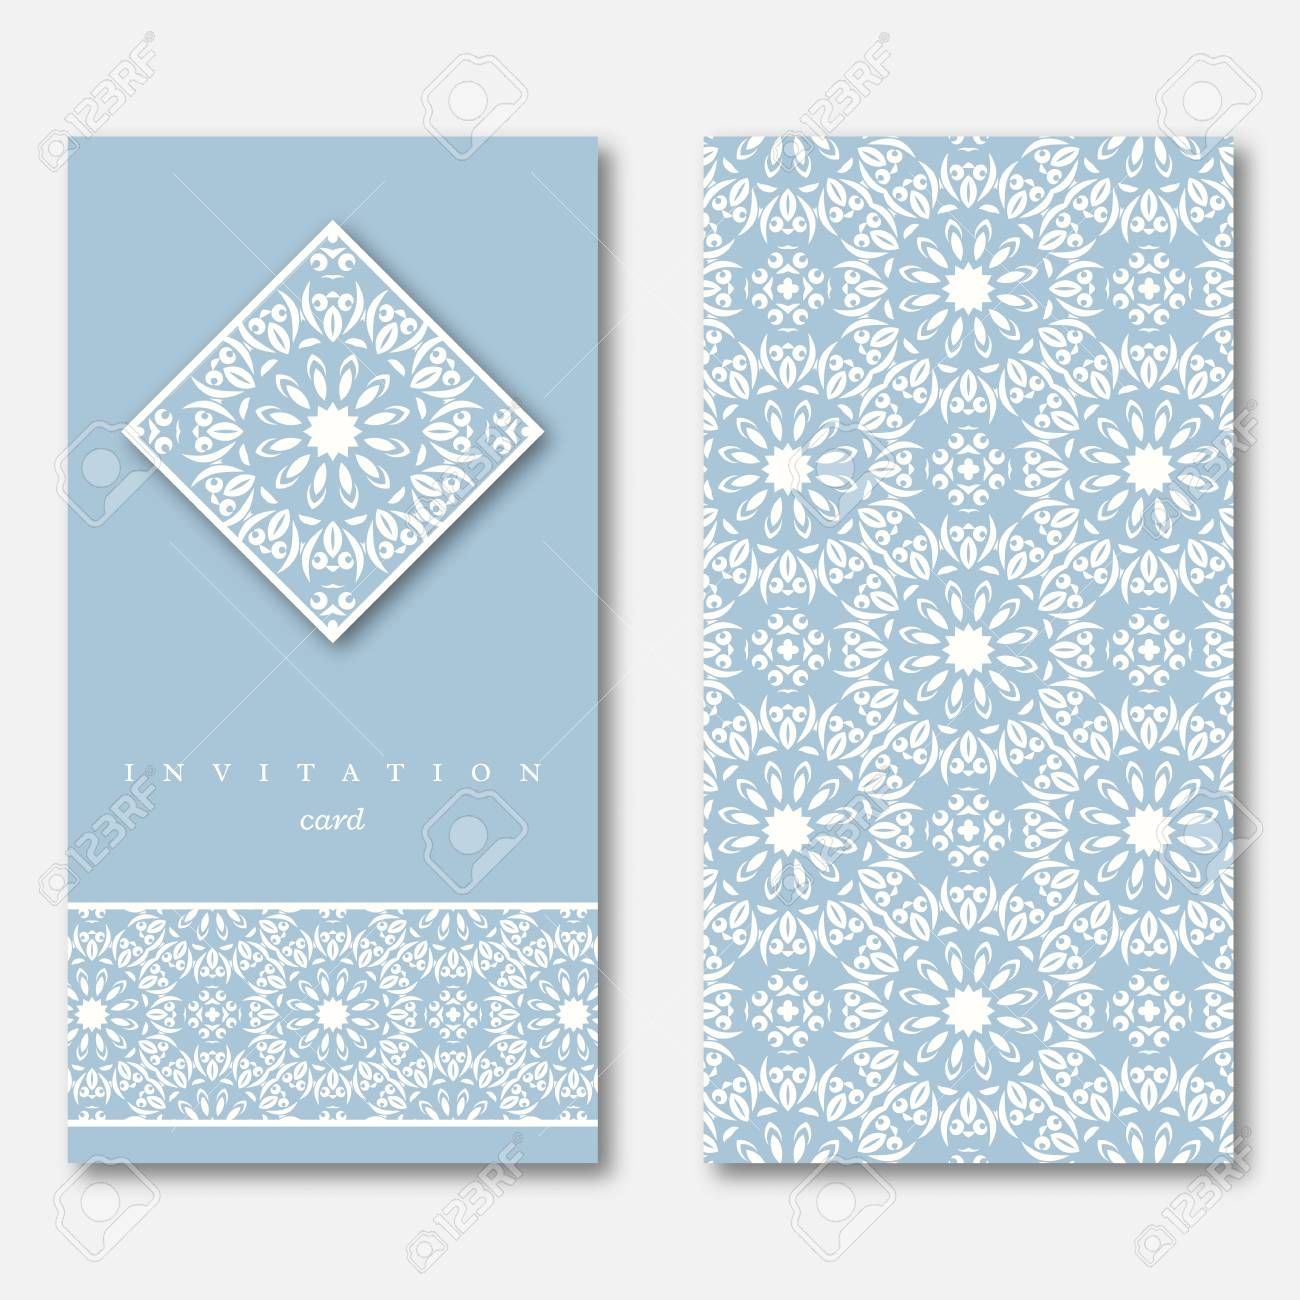 Set of two cards template for greeting invitation wedding stock illustration set of two cards template for greeting invitation wedding cards hand drawn mandala pattern vintage oriental style asian indian arabic stopboris Images